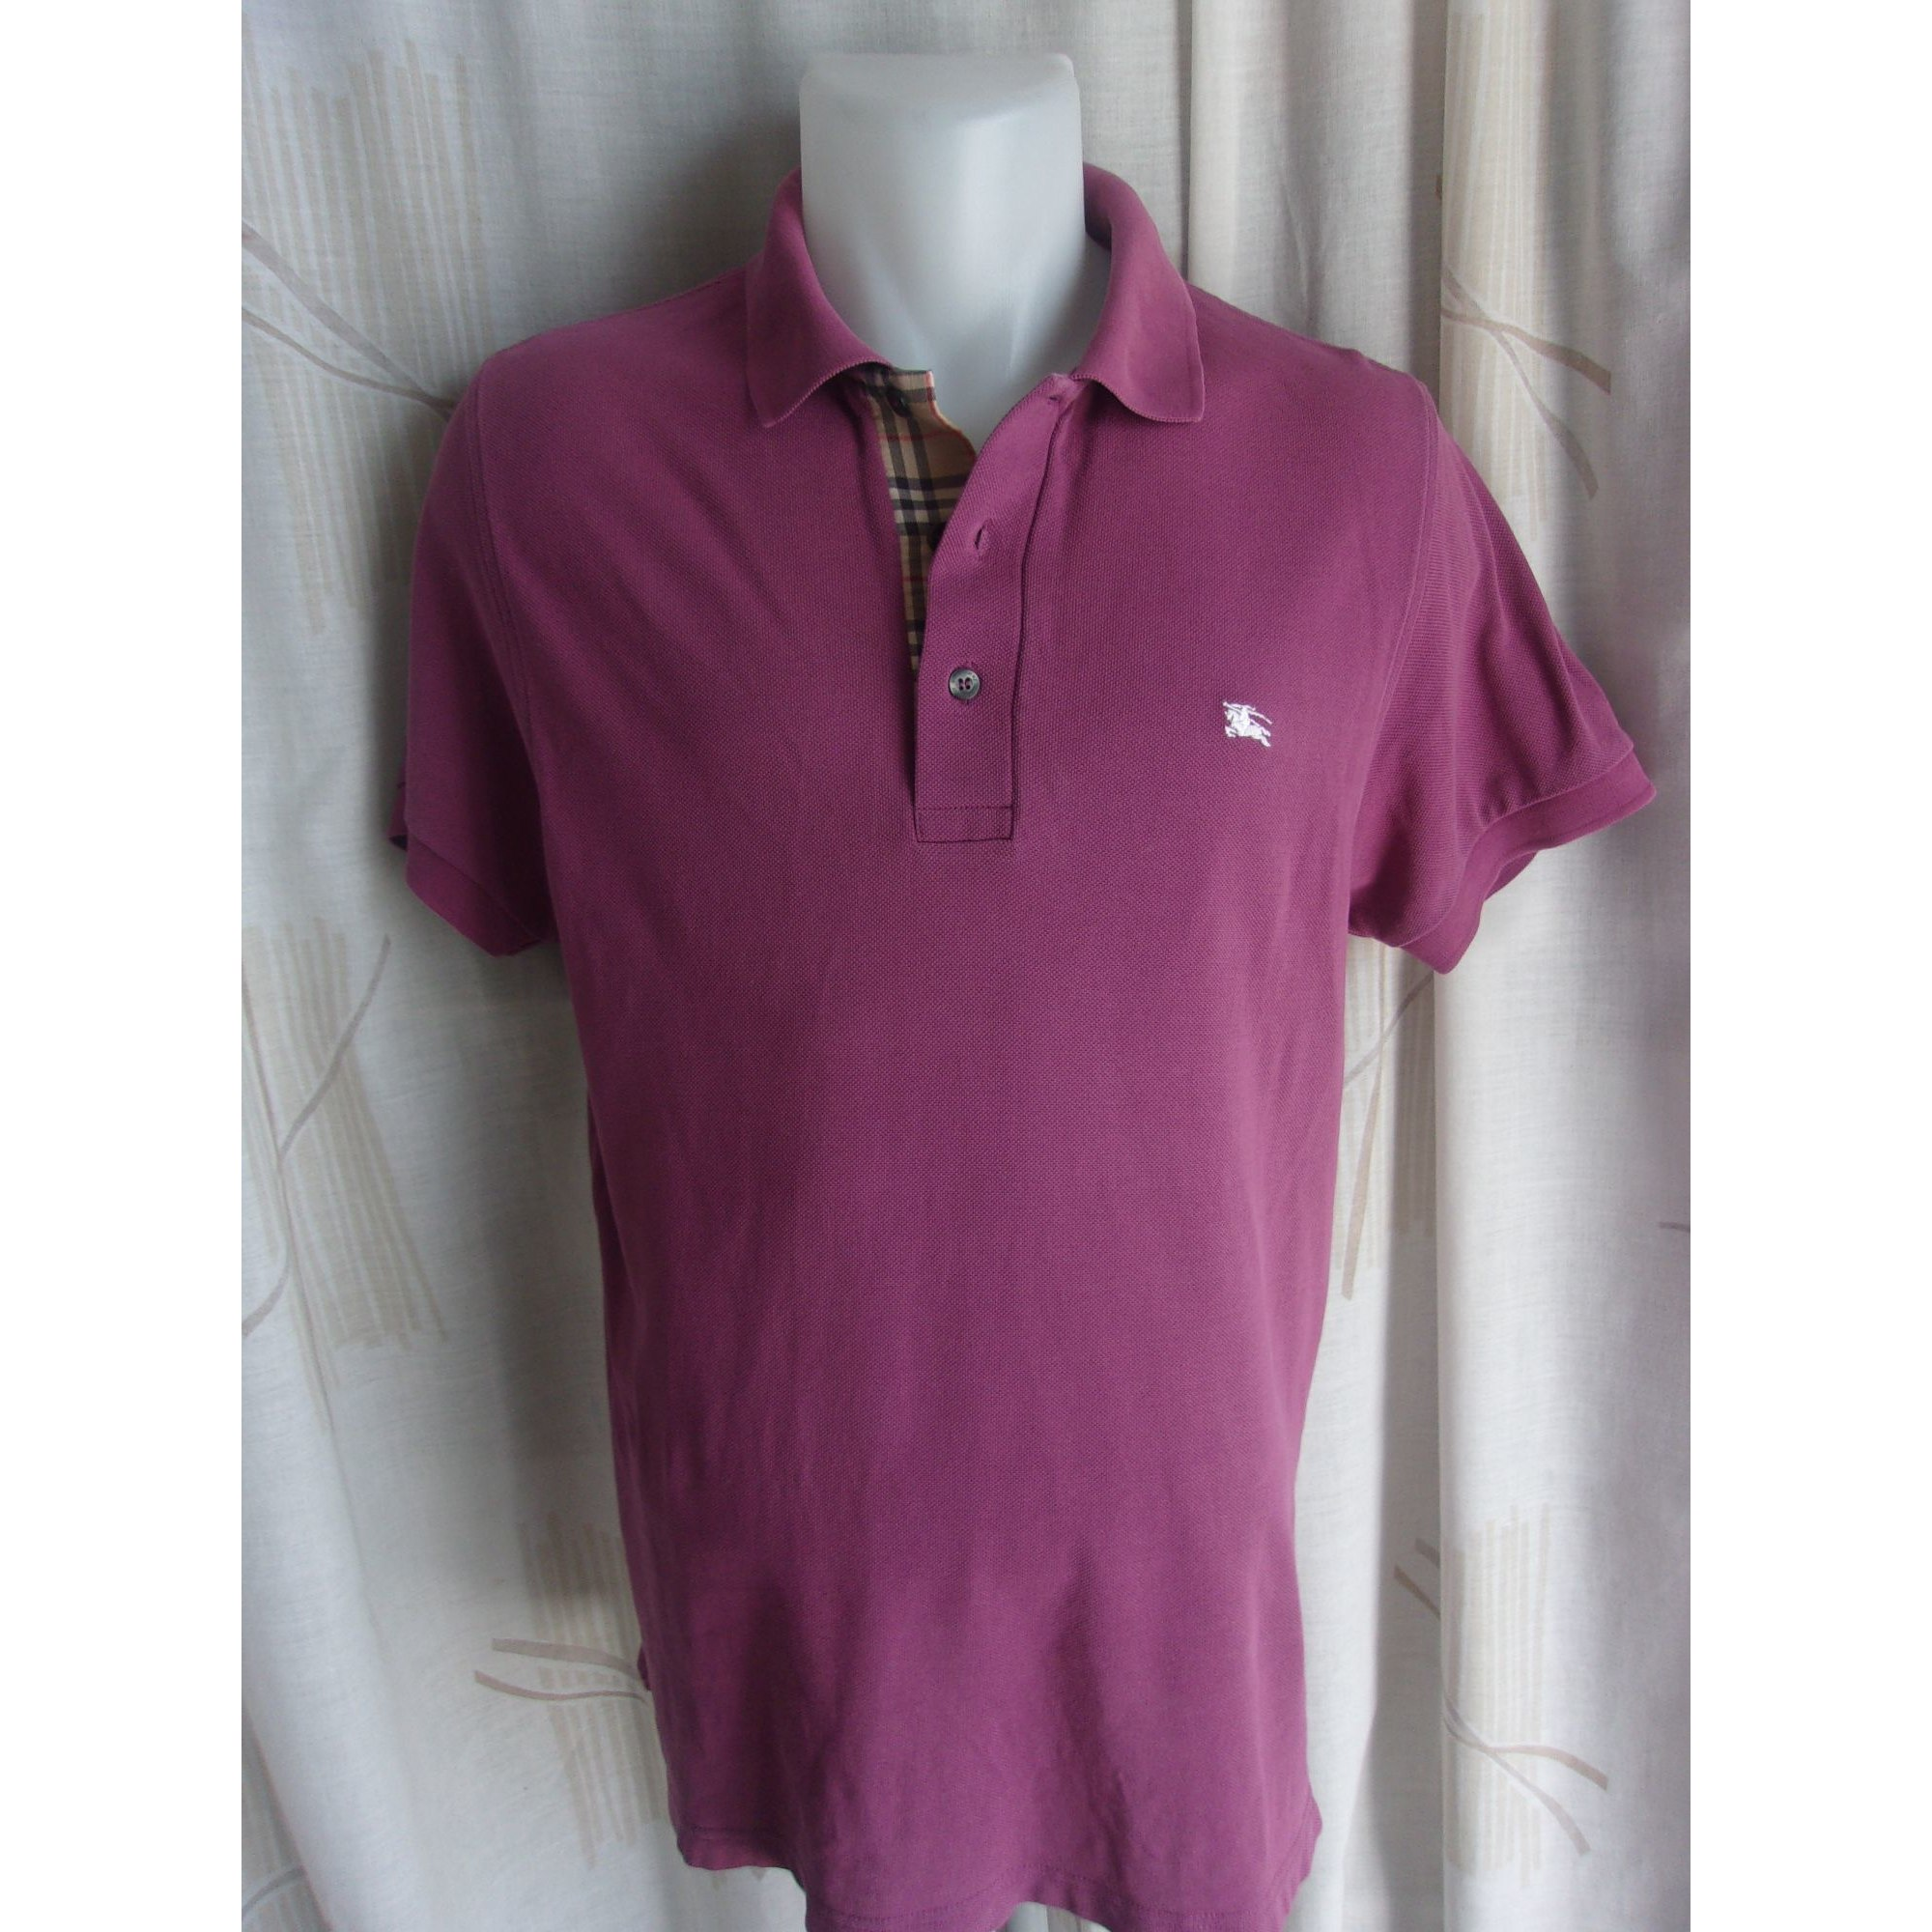 f095fde9116 Polo BURBERRY 2 (M) violet vendu par France mode - 7897780